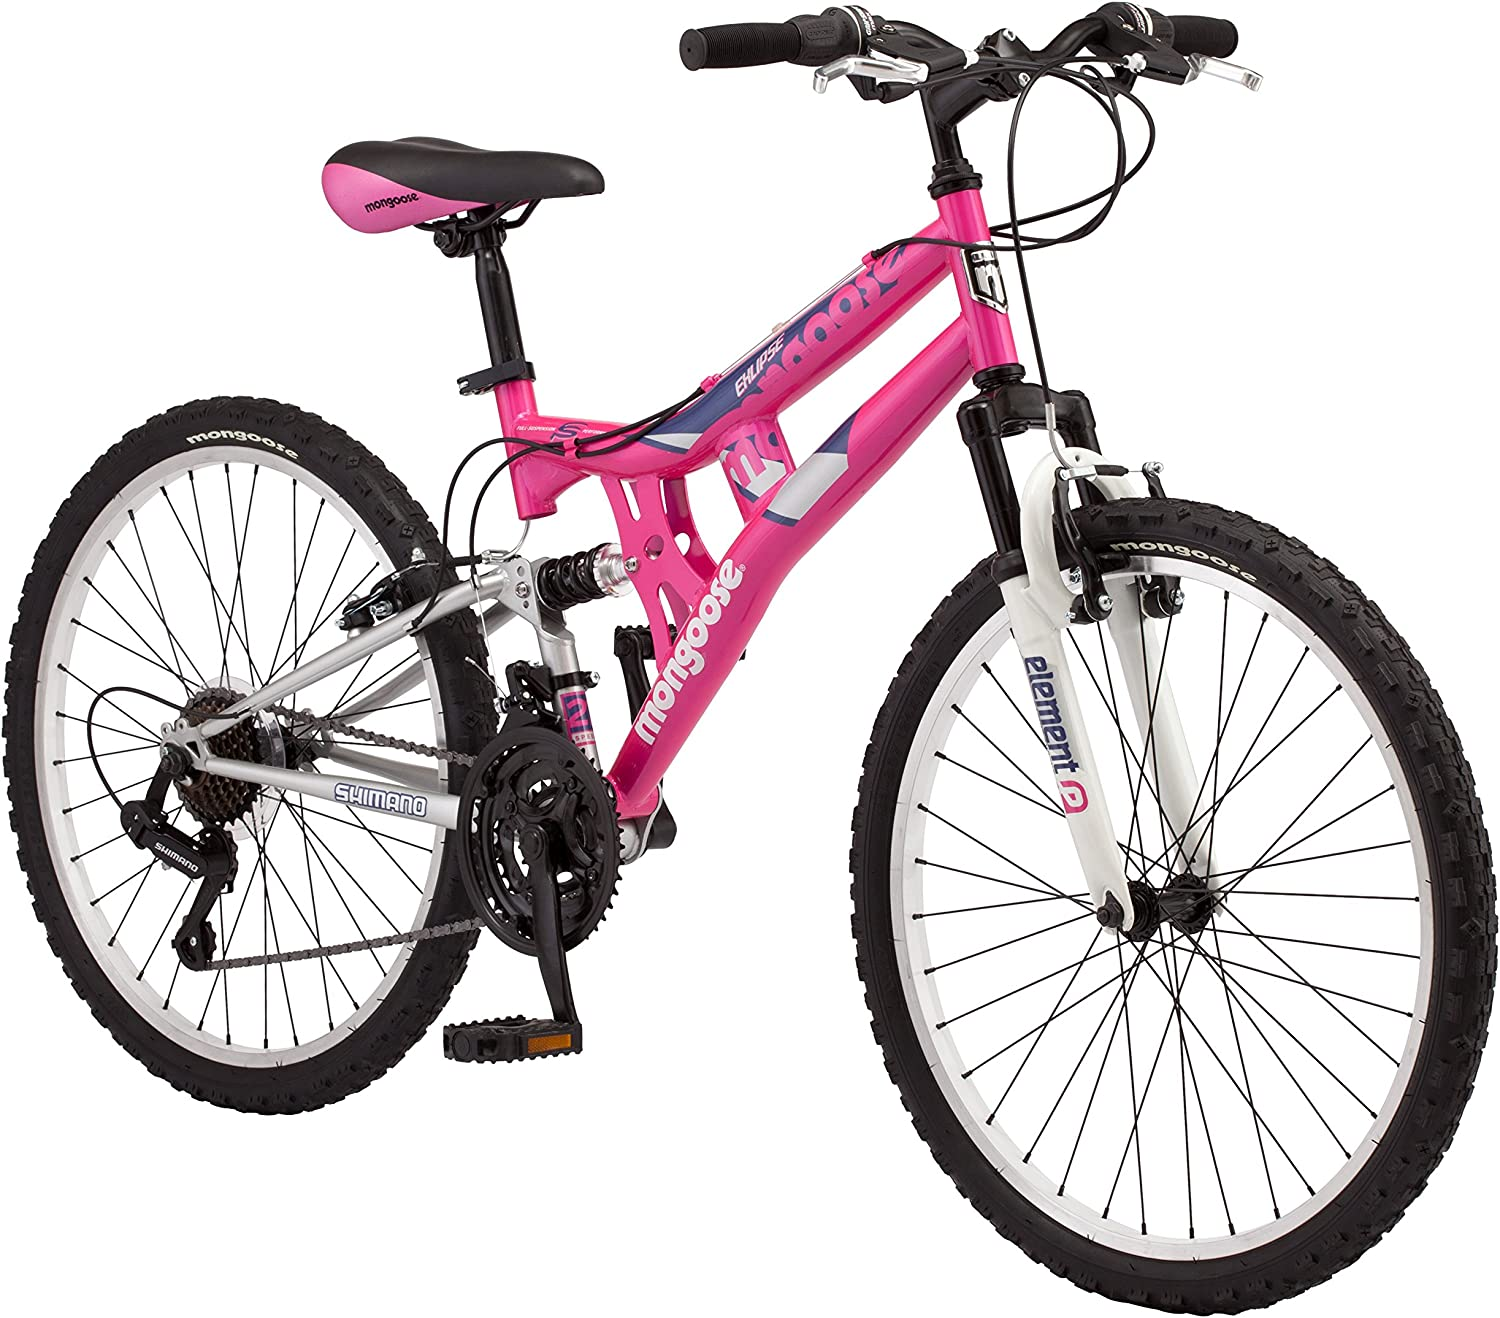 Mongoose Exlipse Full Dual-Suspension Mountain Bike for Kids, Featuring 15-Inch Small Steel Frame and 21-Speed Shimano Drivetrain with 24-Inch Wheels, Kickstand Included, Pink